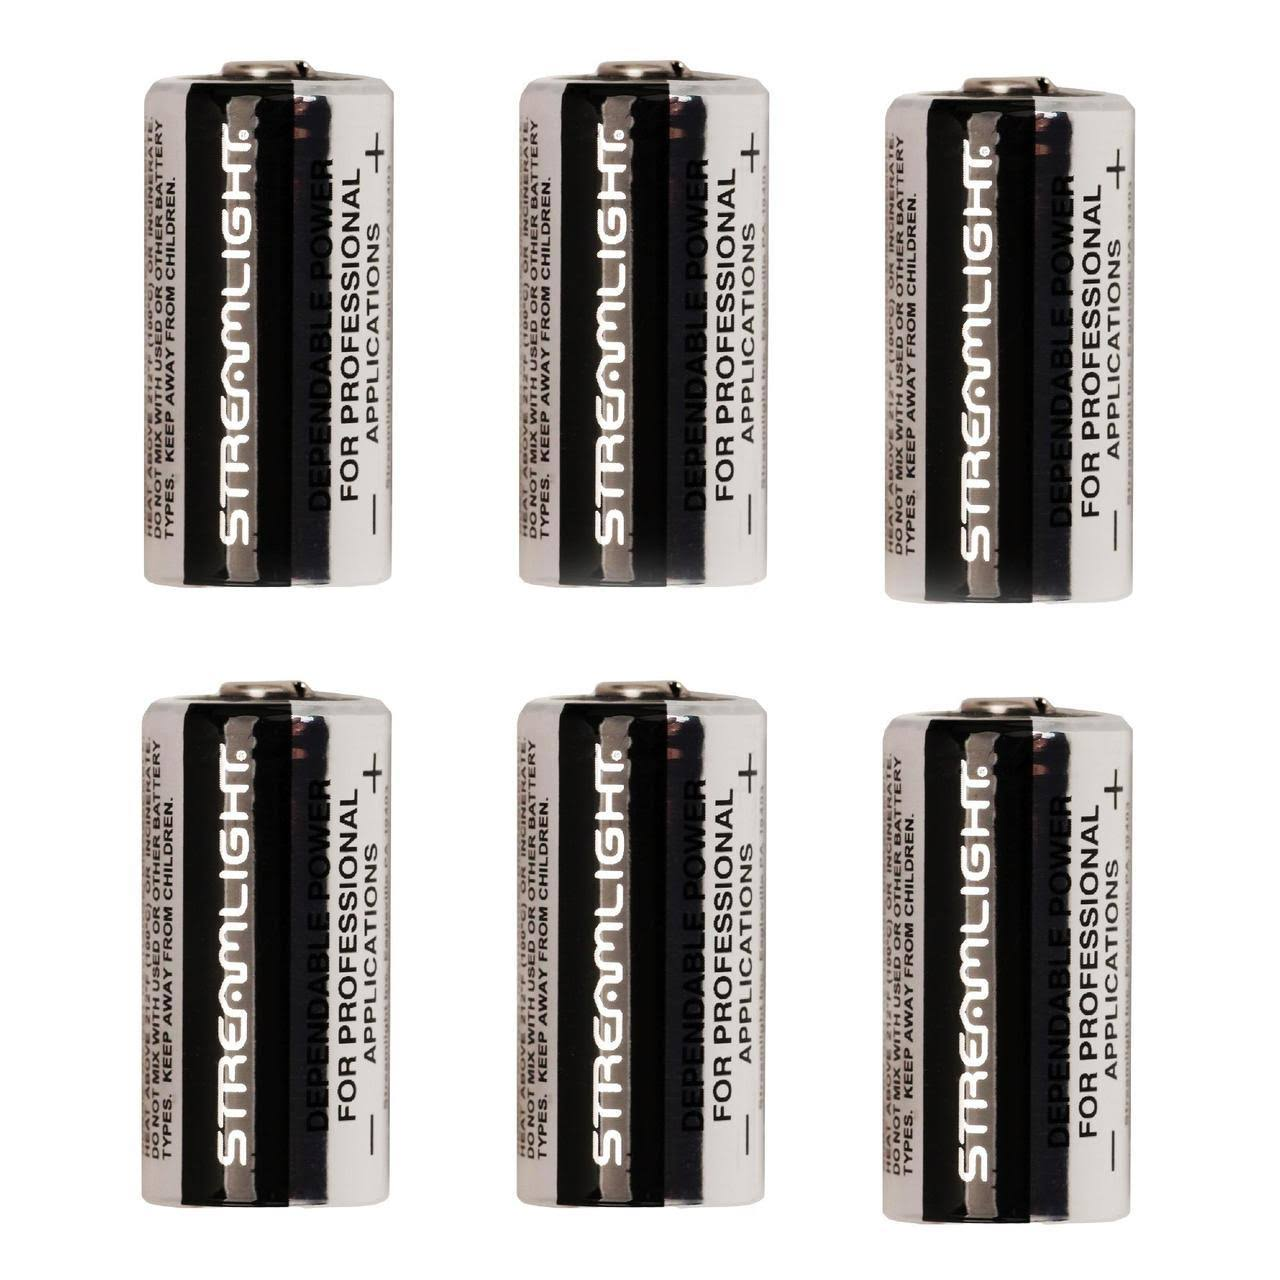 Streamlight Cr123A Replacement Lithium Flashlight Batteries - 6pk